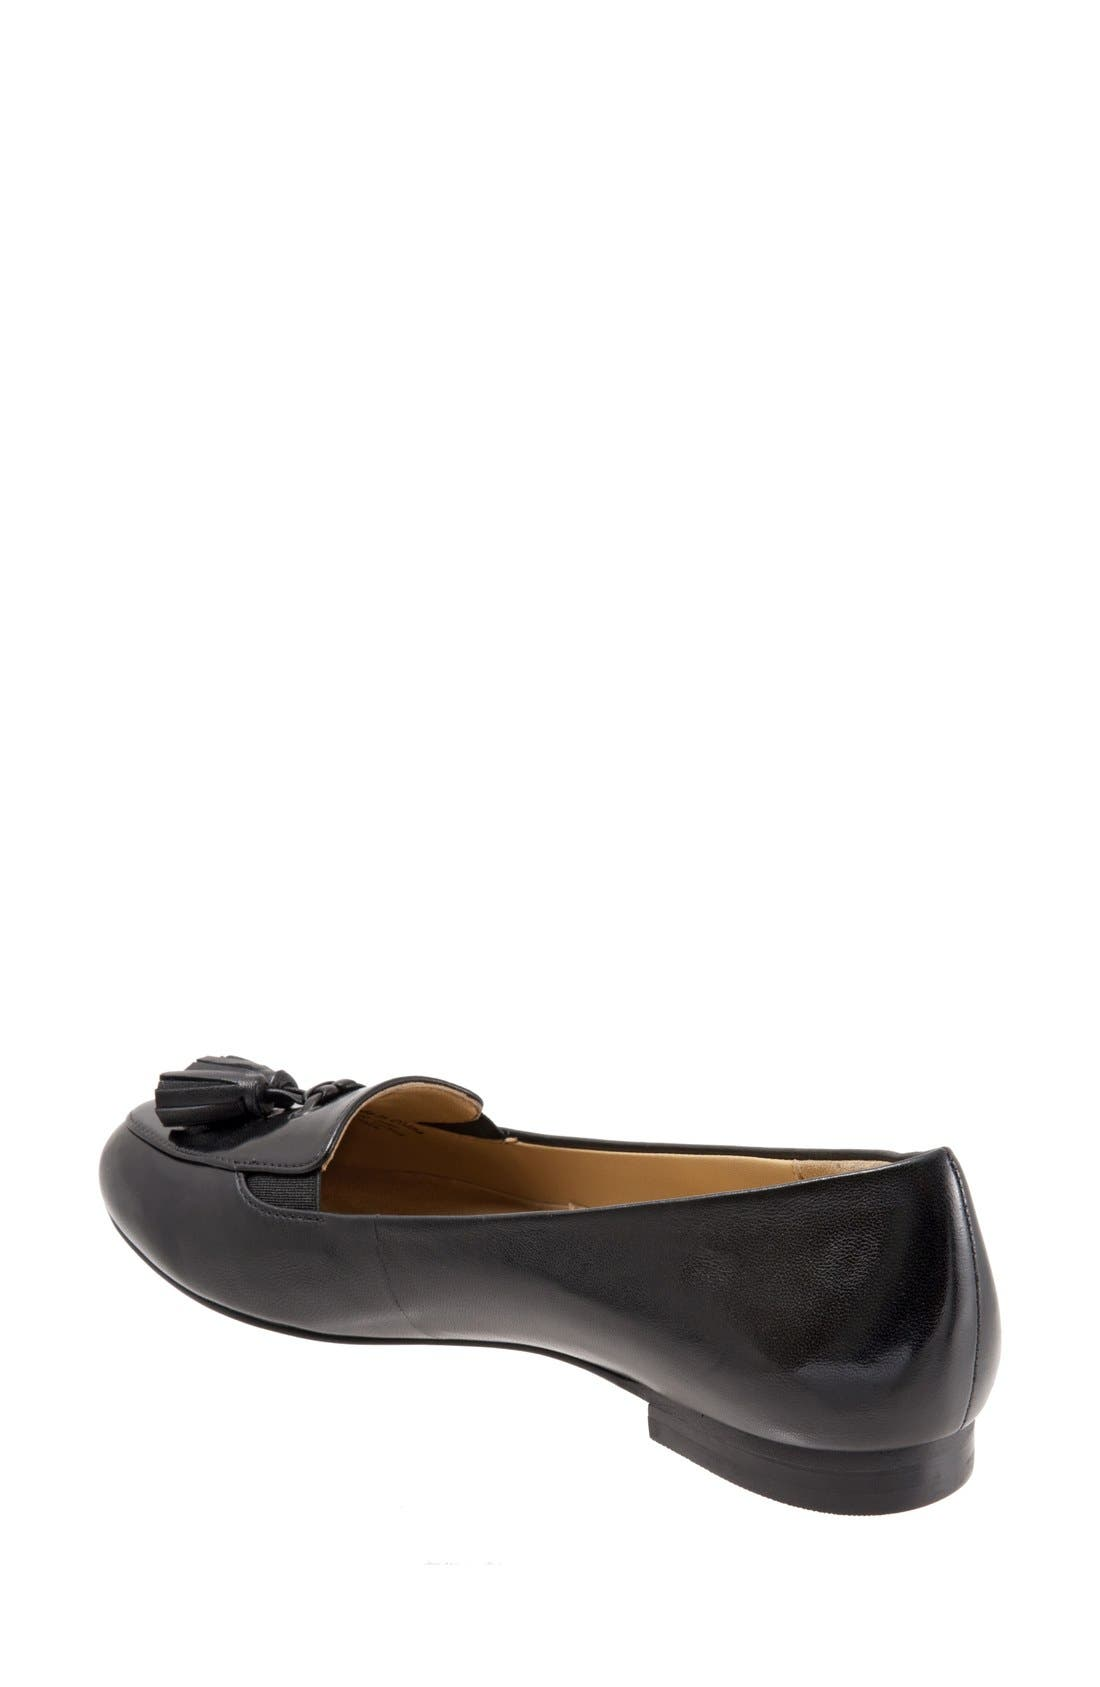 'Caroline' Tassel Loafer,                             Alternate thumbnail 3, color,                             BLACK LEATHER